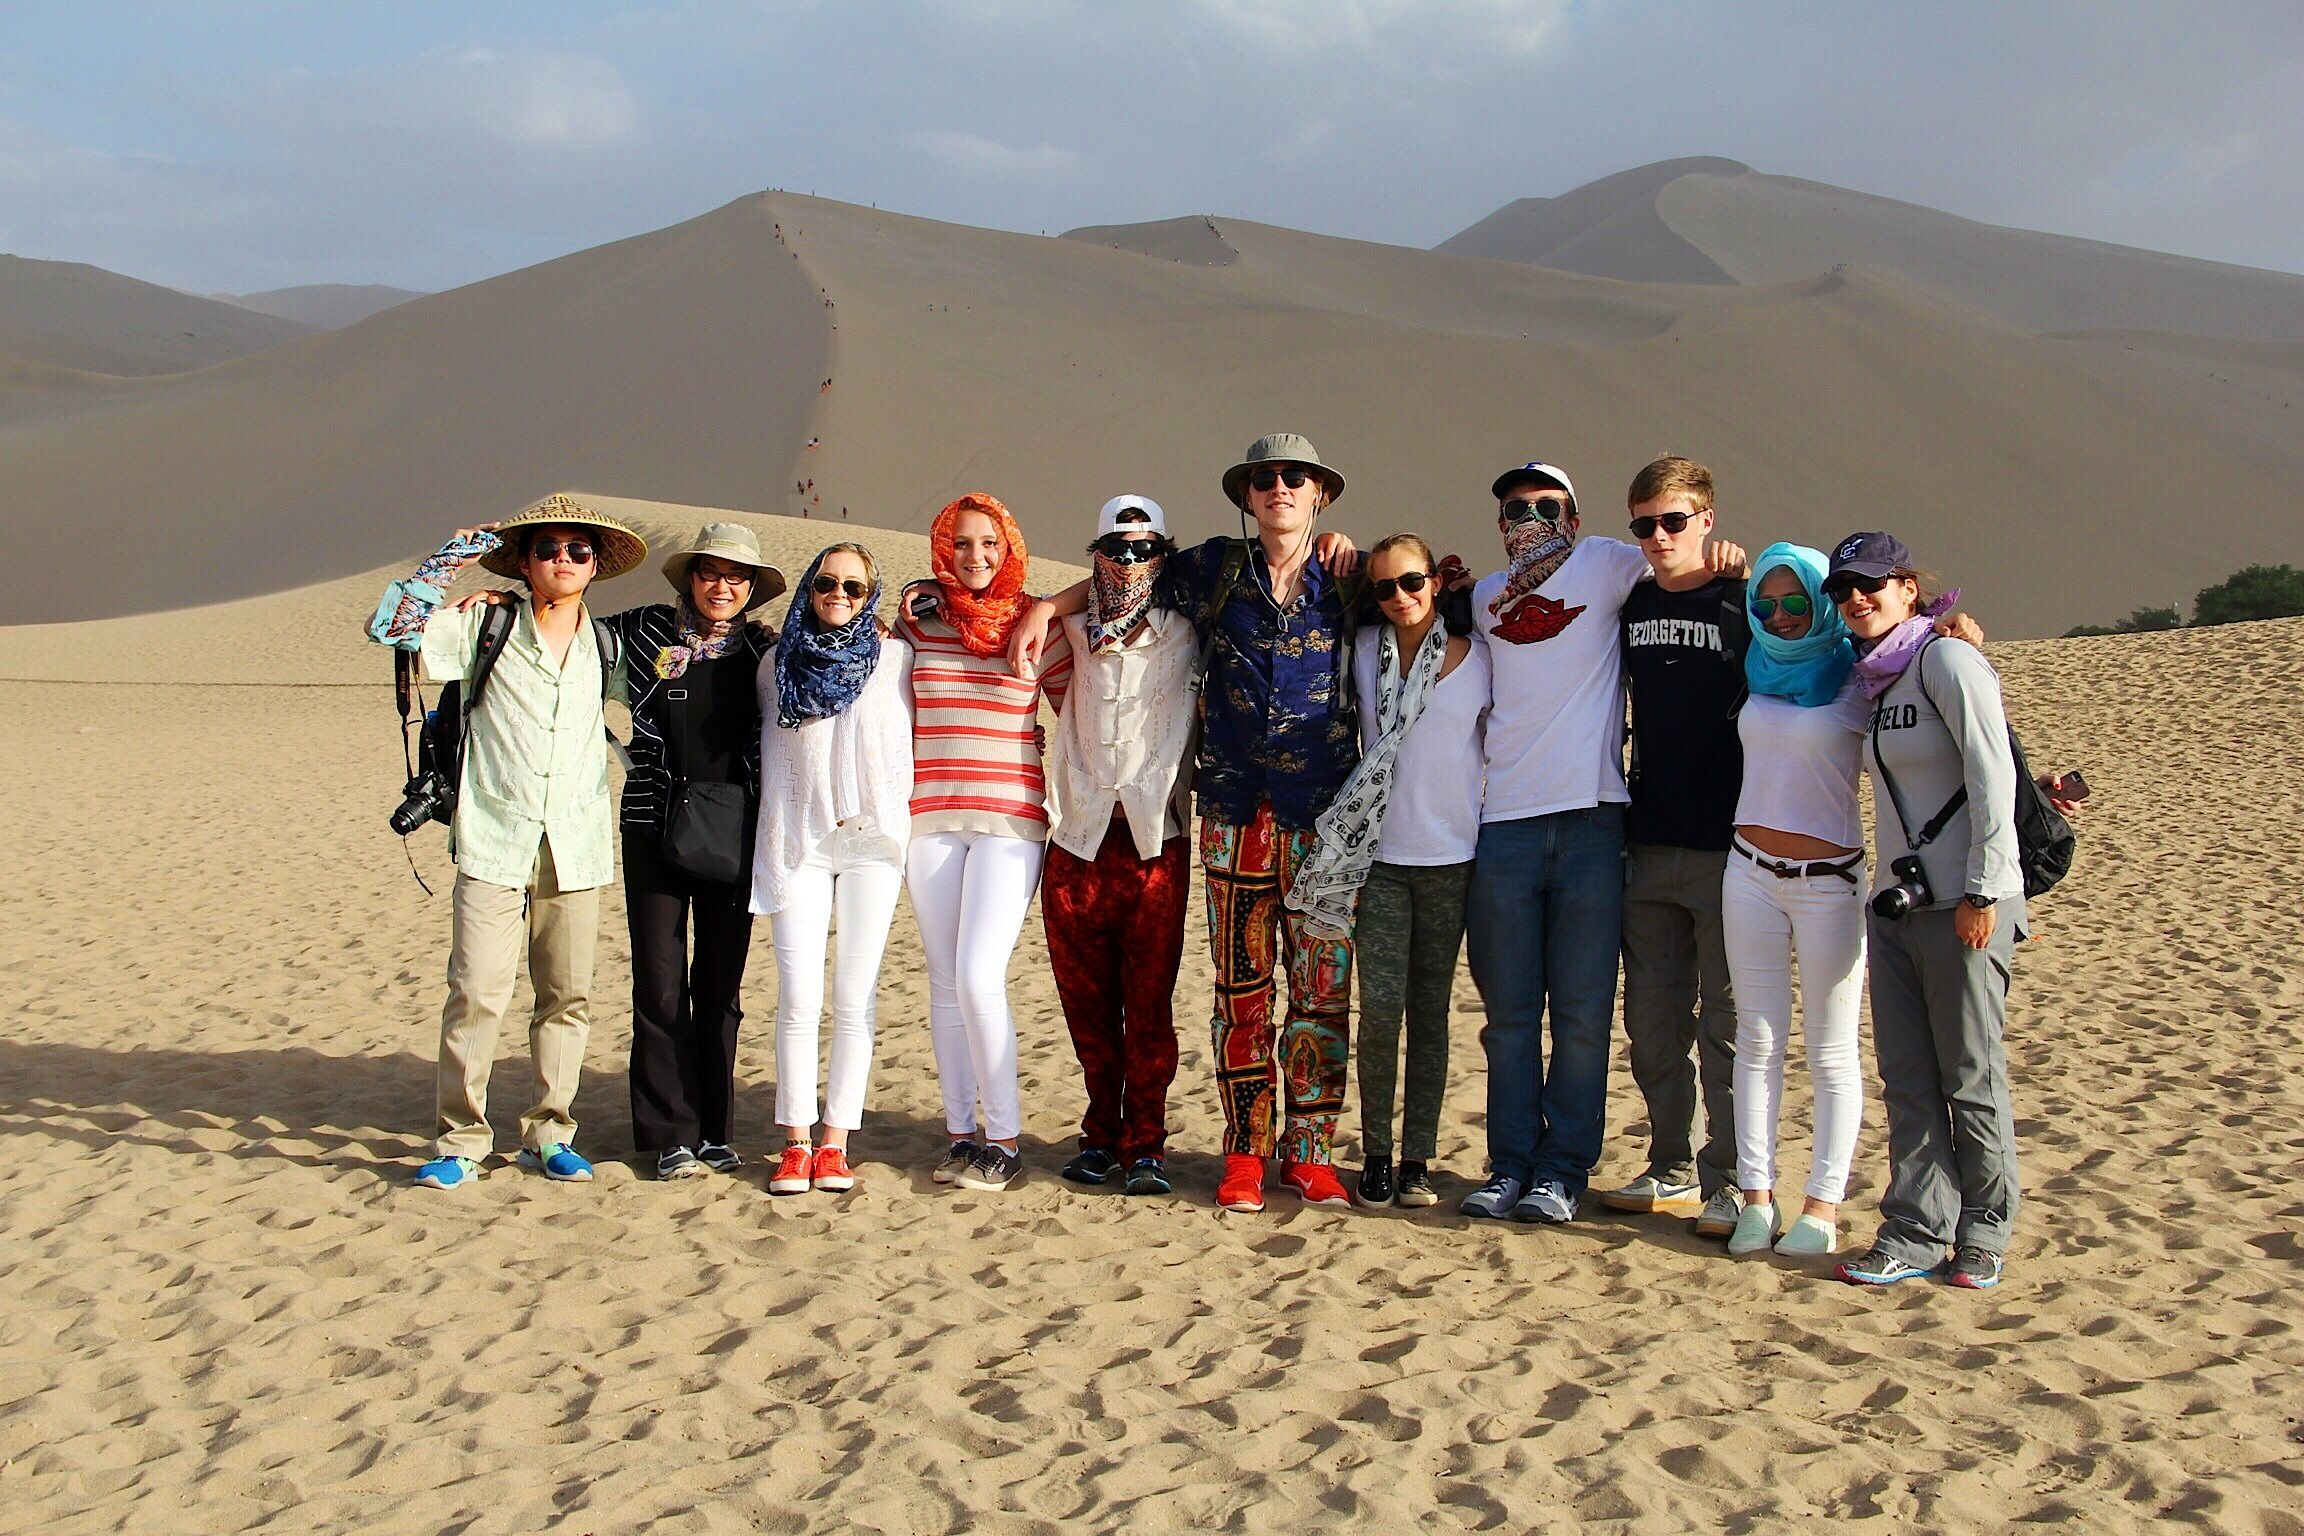 China group in Gobi Desert Spagna